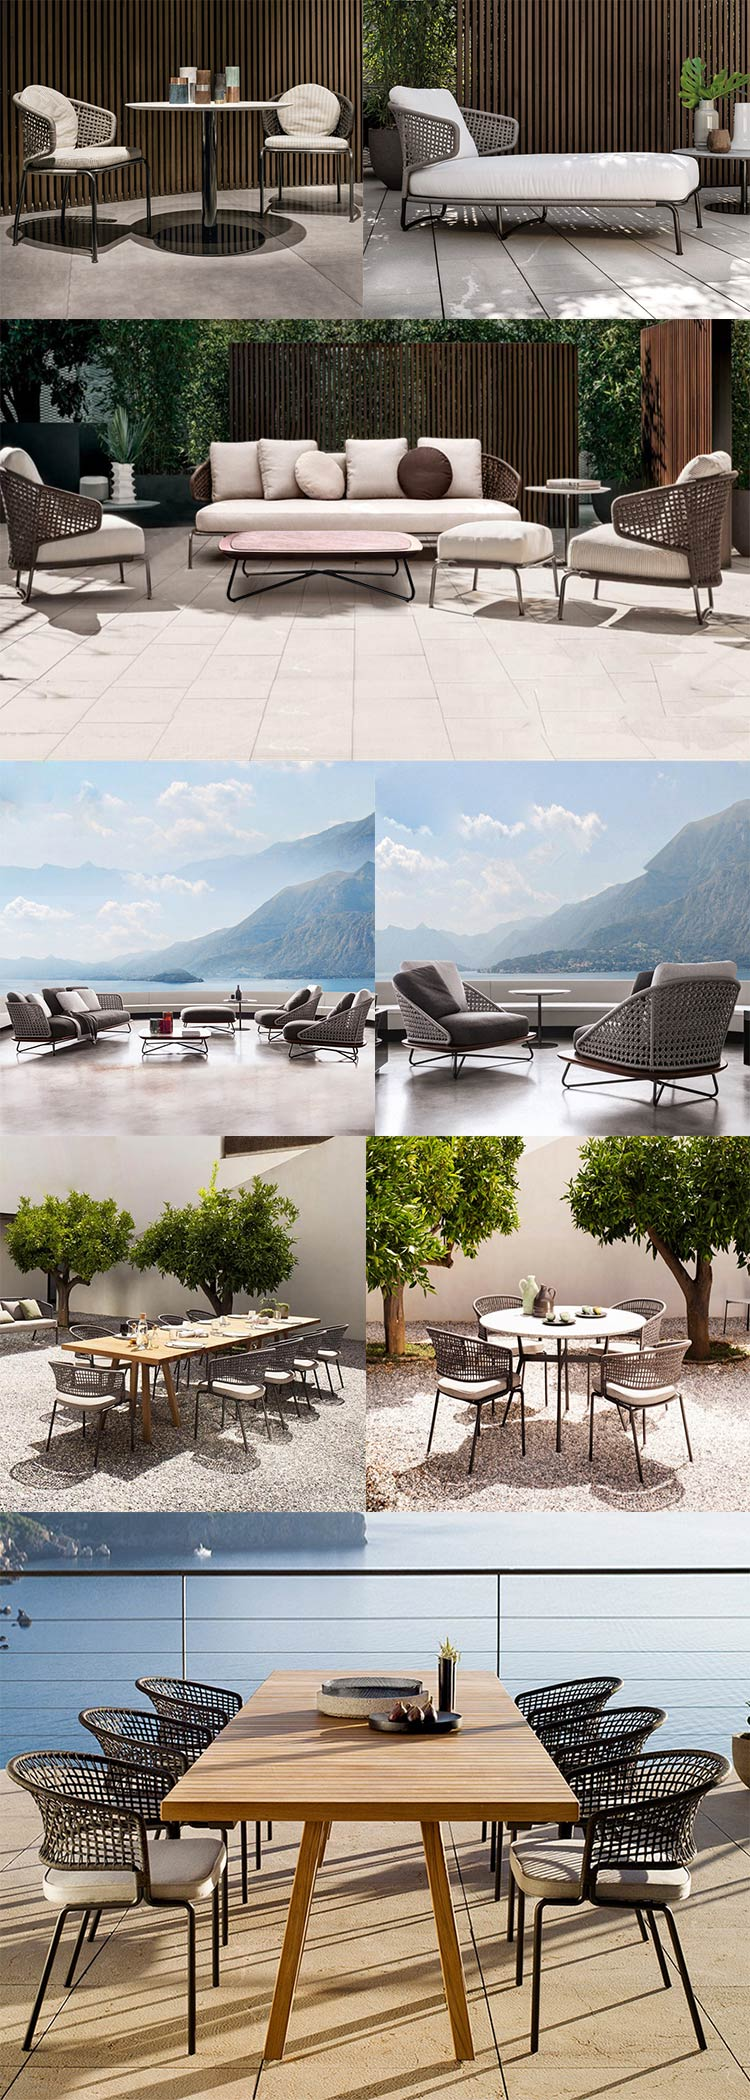 Hot sell High end luxury modern sectio<em></em>nals wicker rattan outdoor furniture